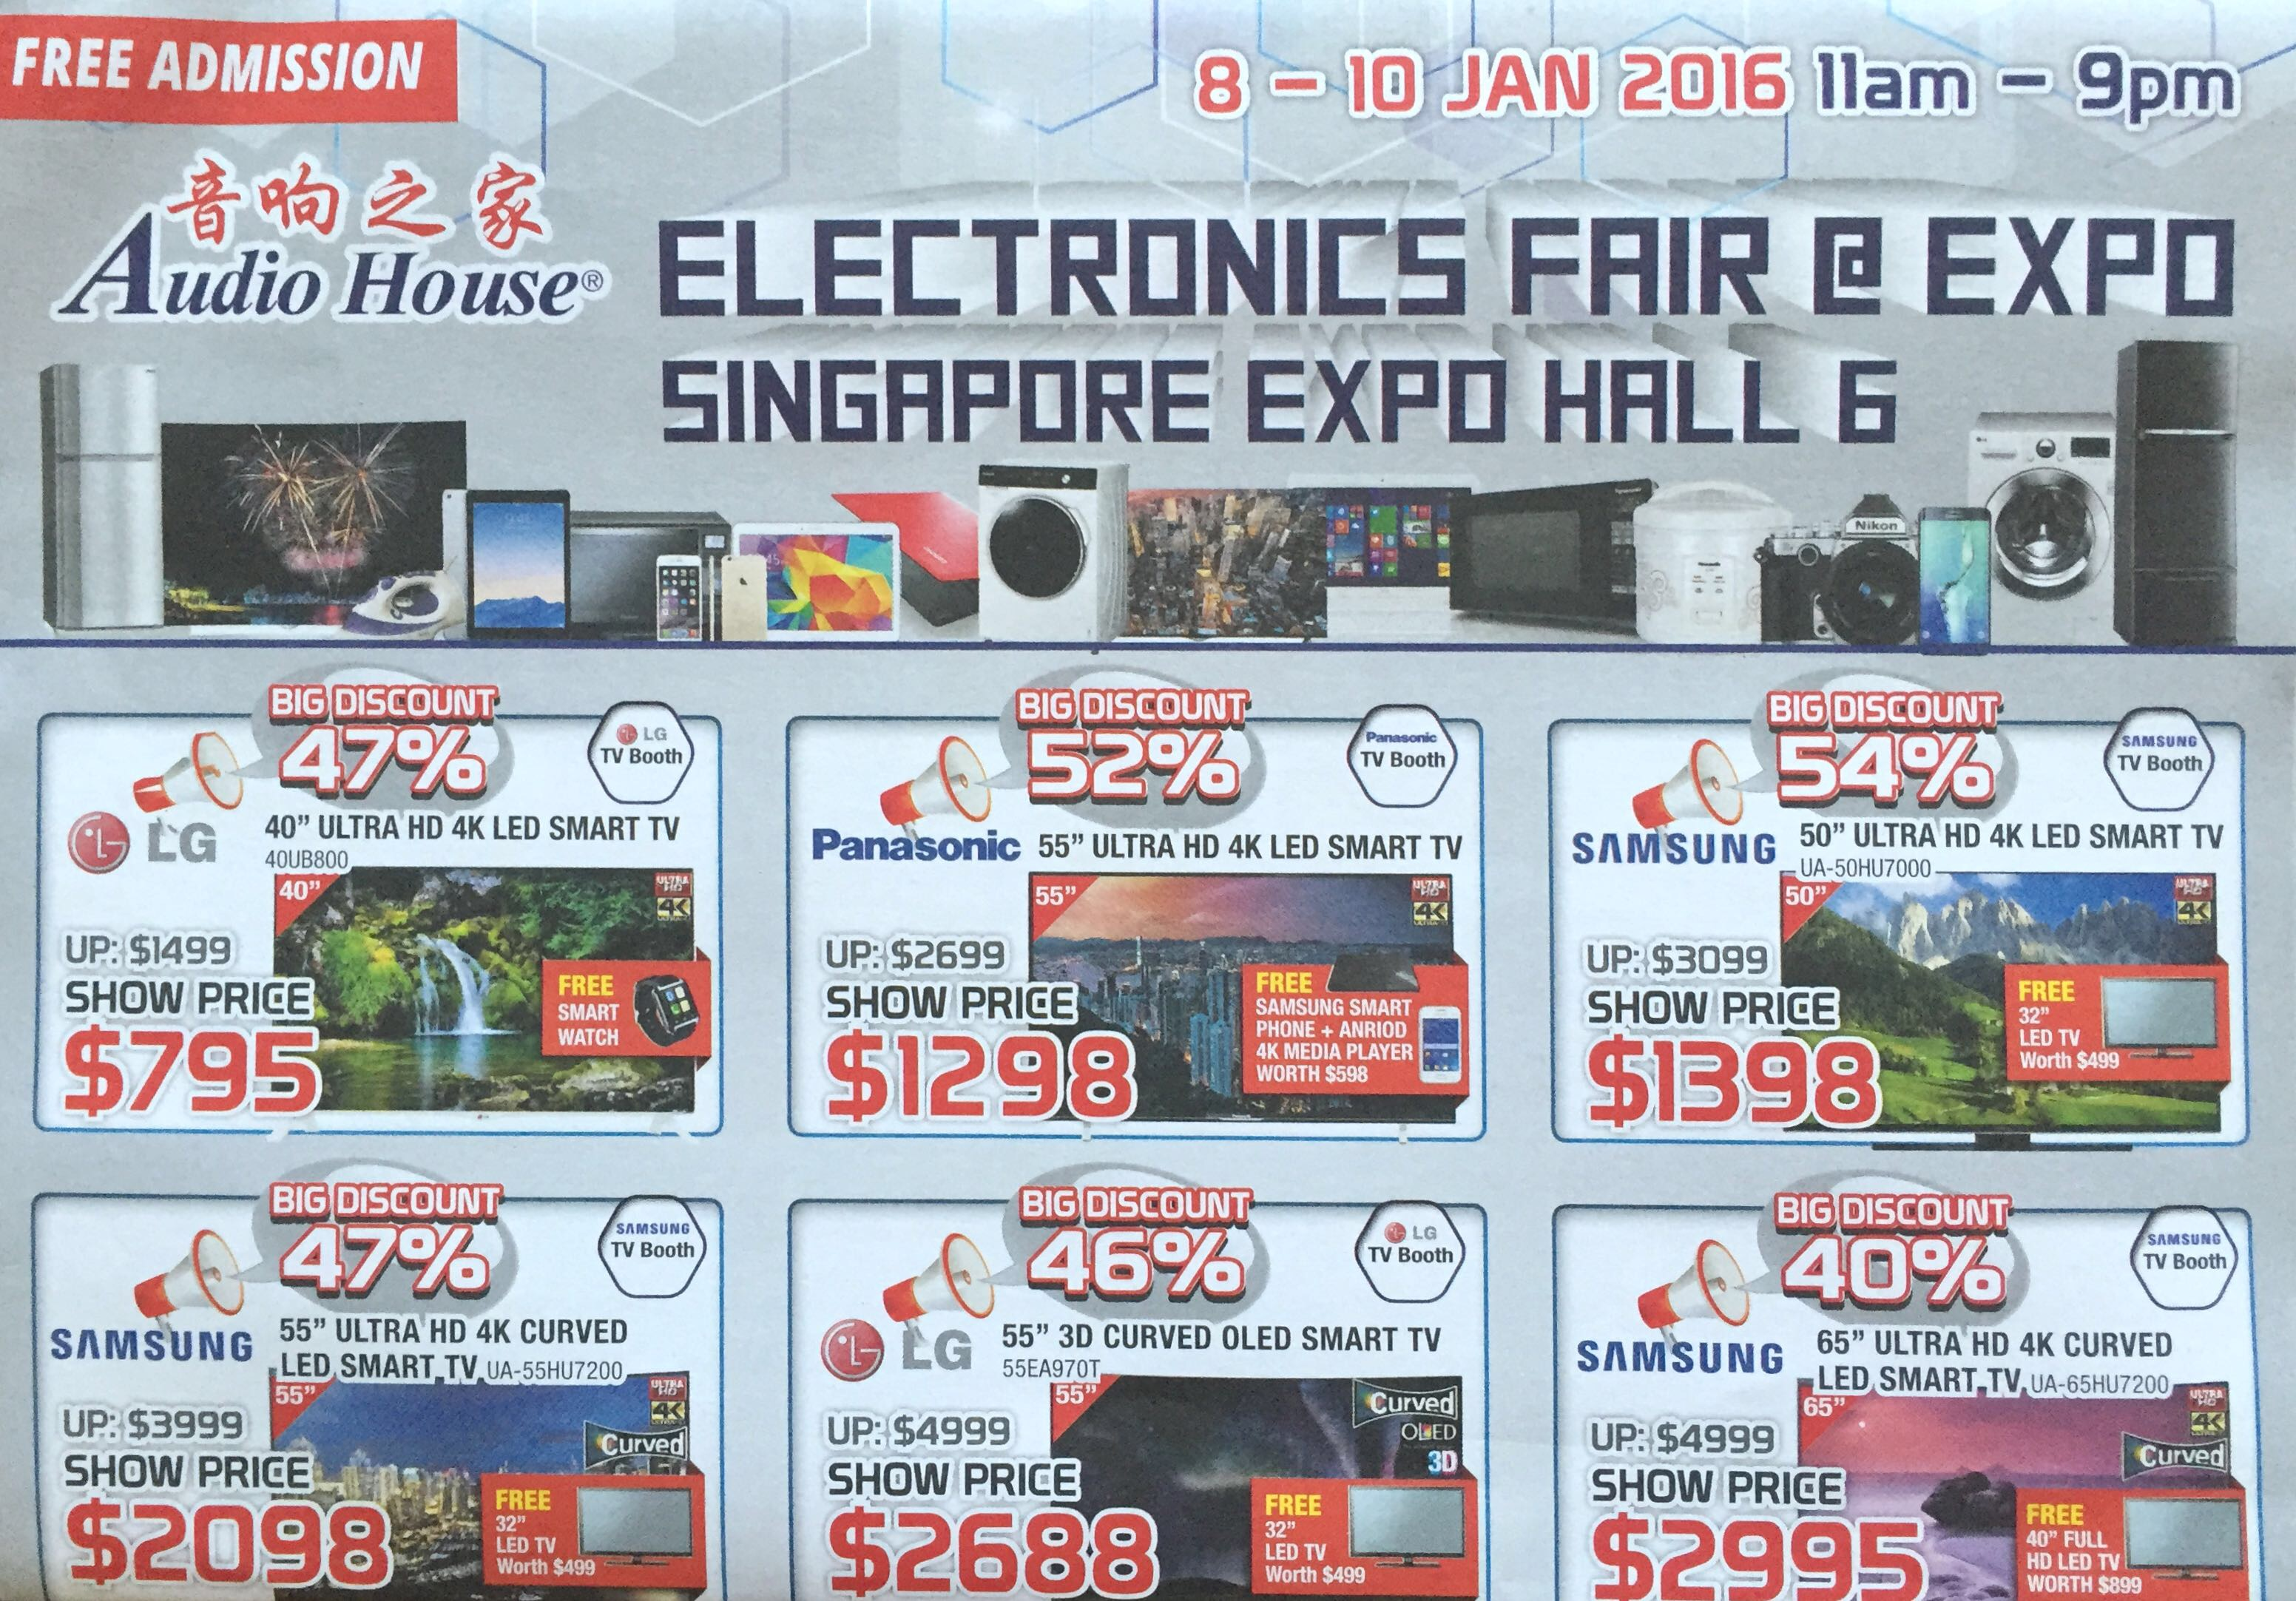 Electronics Fair @ EXPO | 8 - 10 January 2016 | by Audio House | pg1